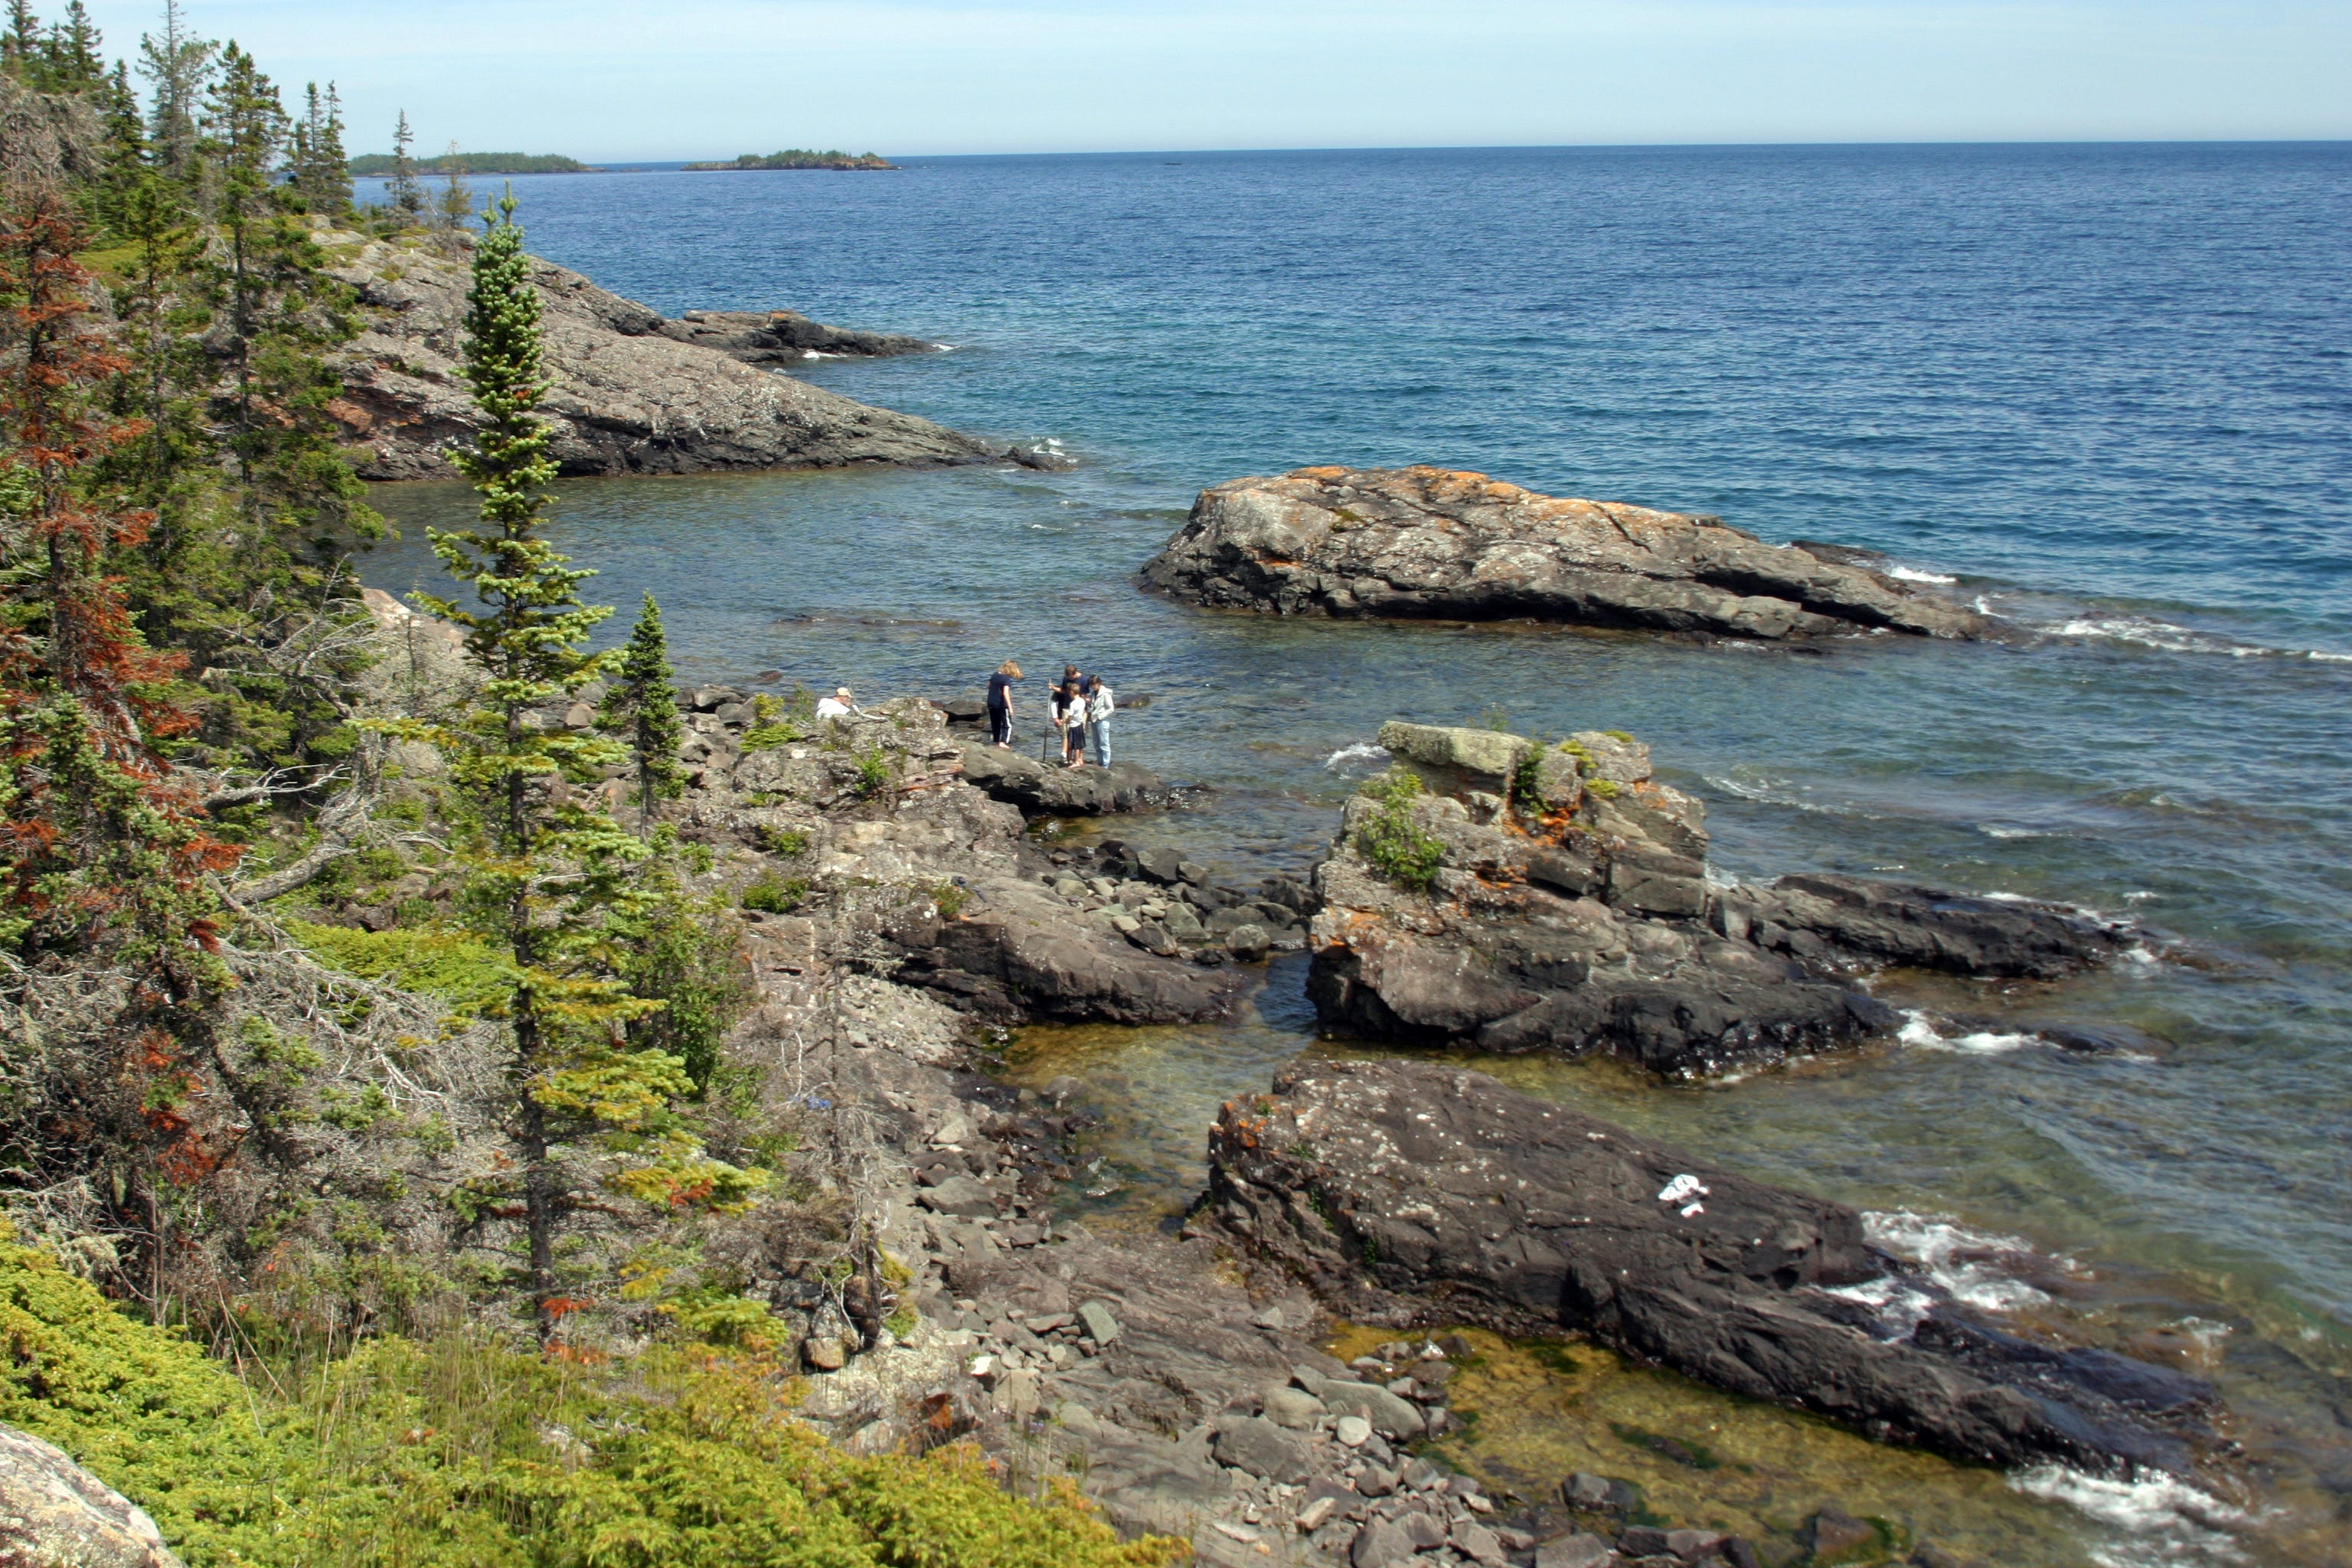 MICHIGAN: On isolated Isle Royale National Park in the middle of Lake Superior, every trail is a remote trail. [Via MerlinFTP Drop]